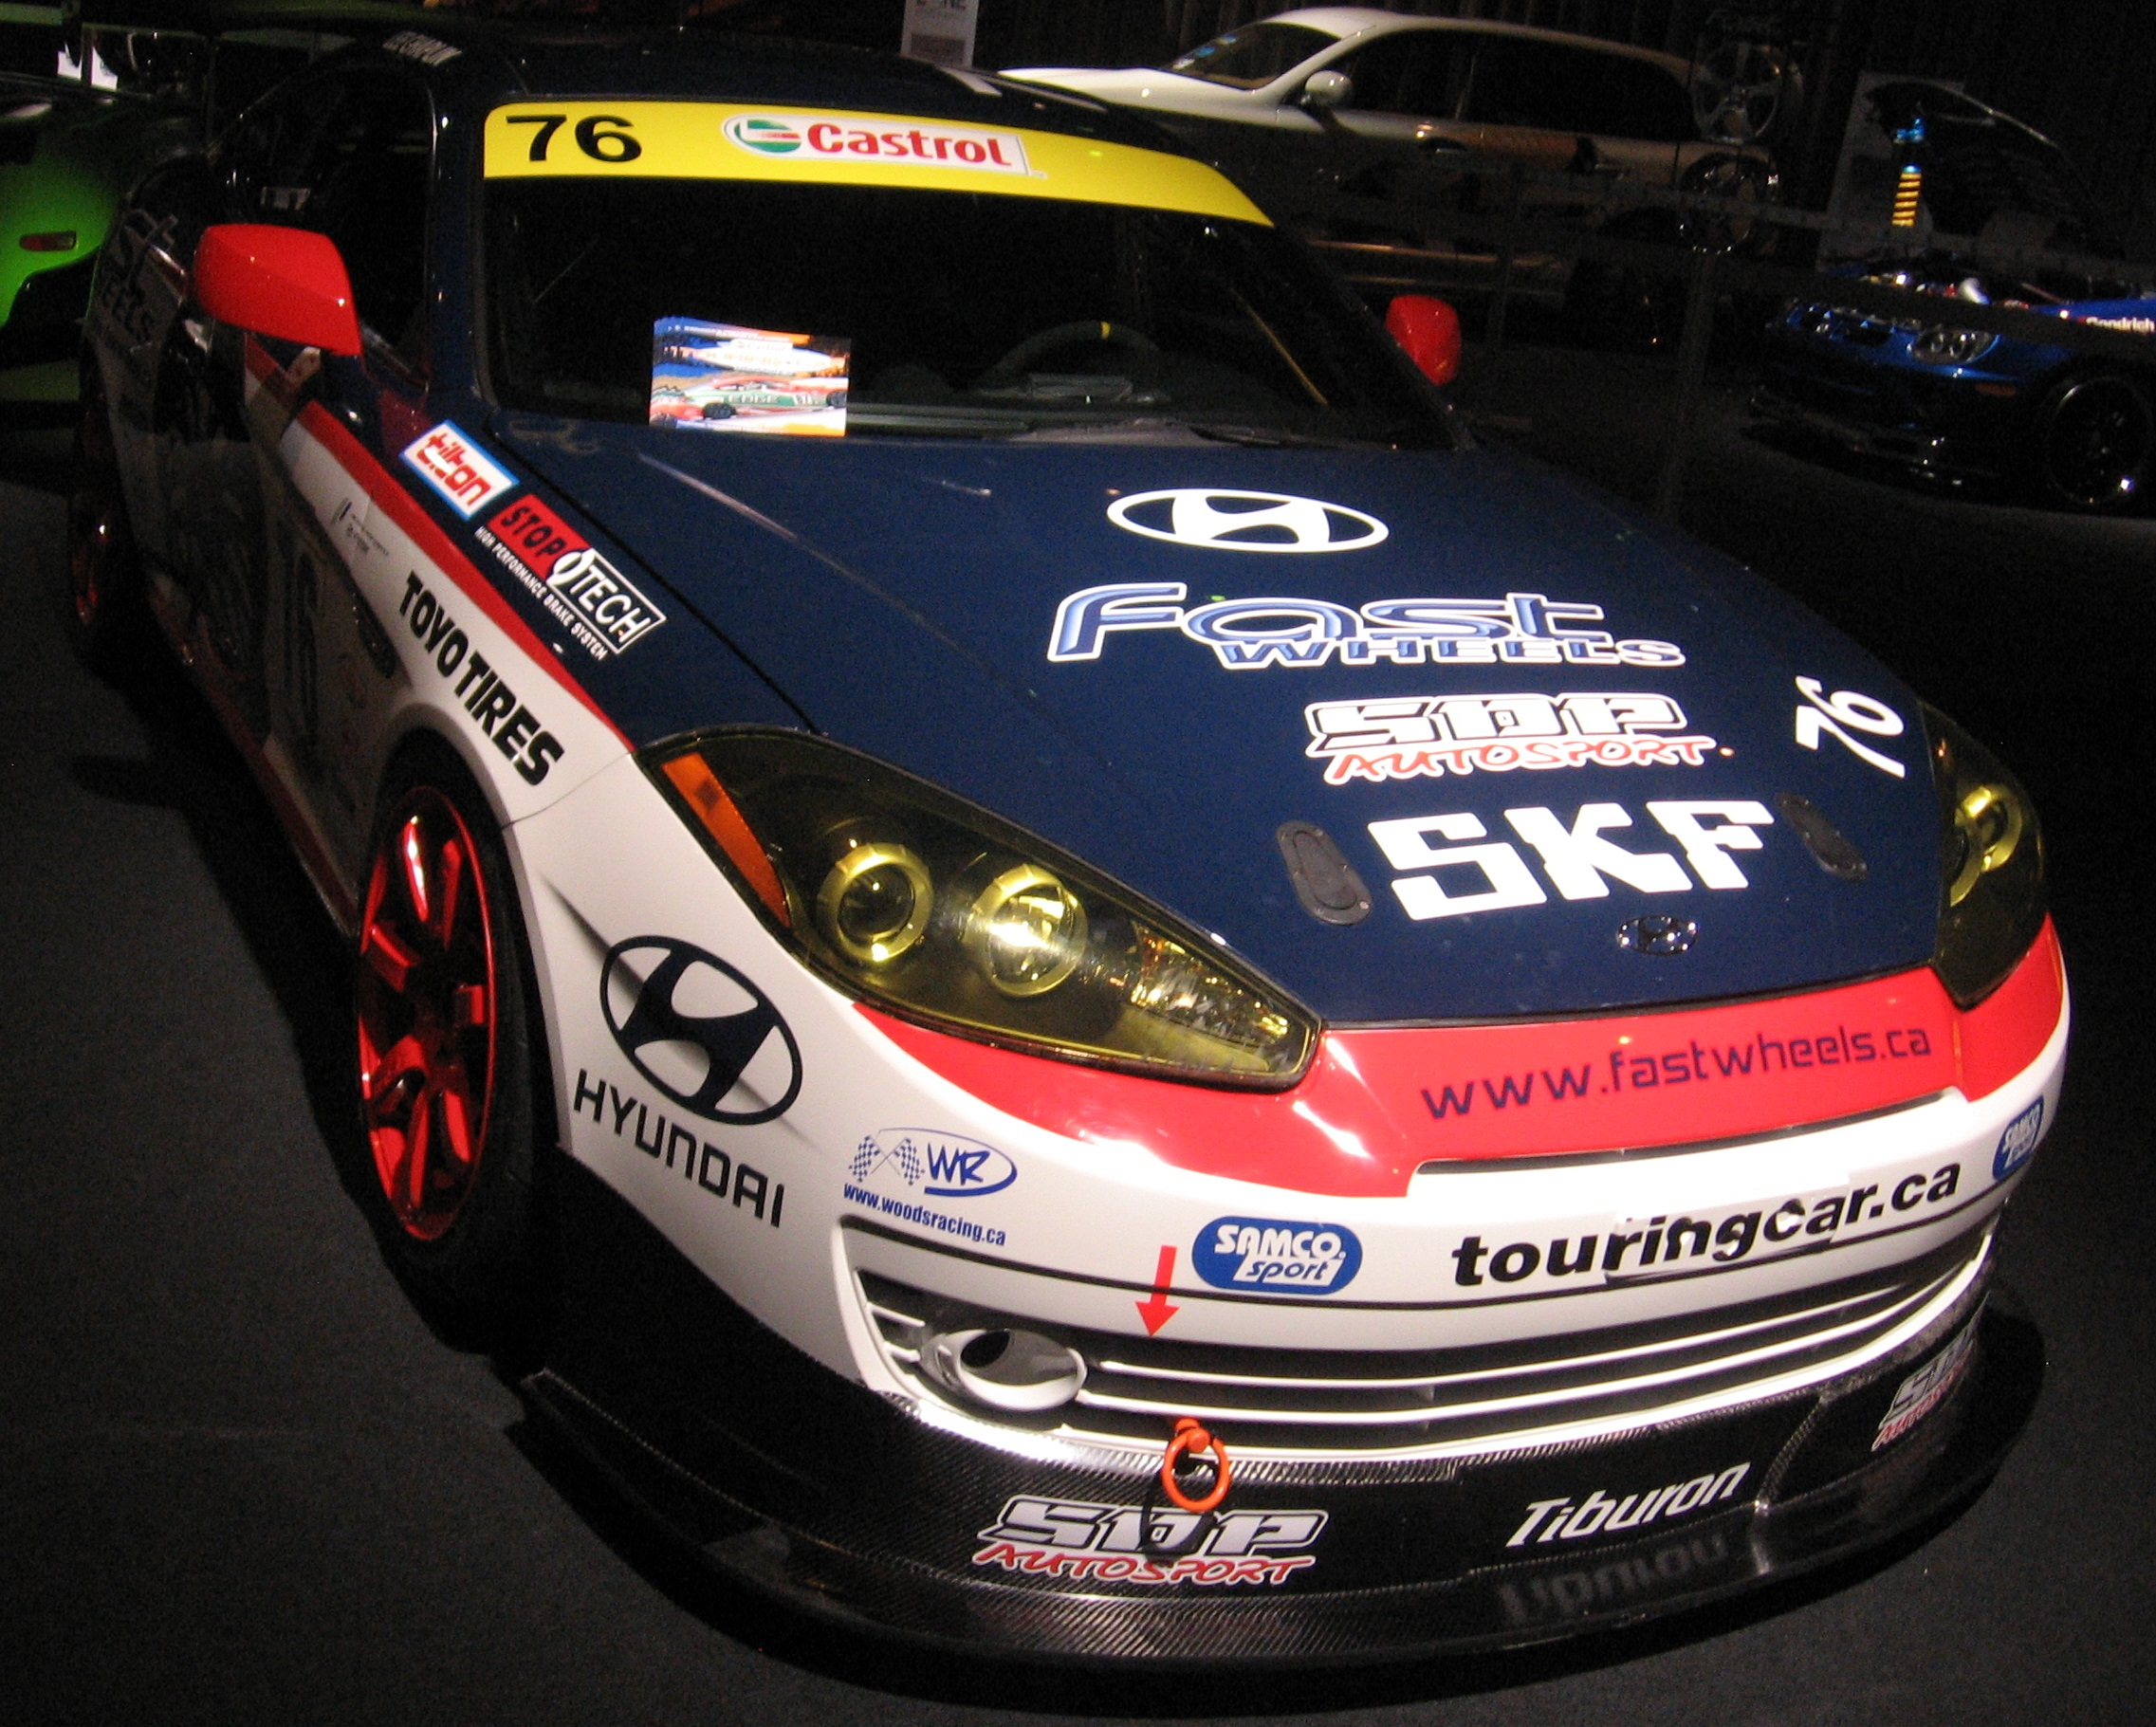 Hyundai tiburon photo - 4